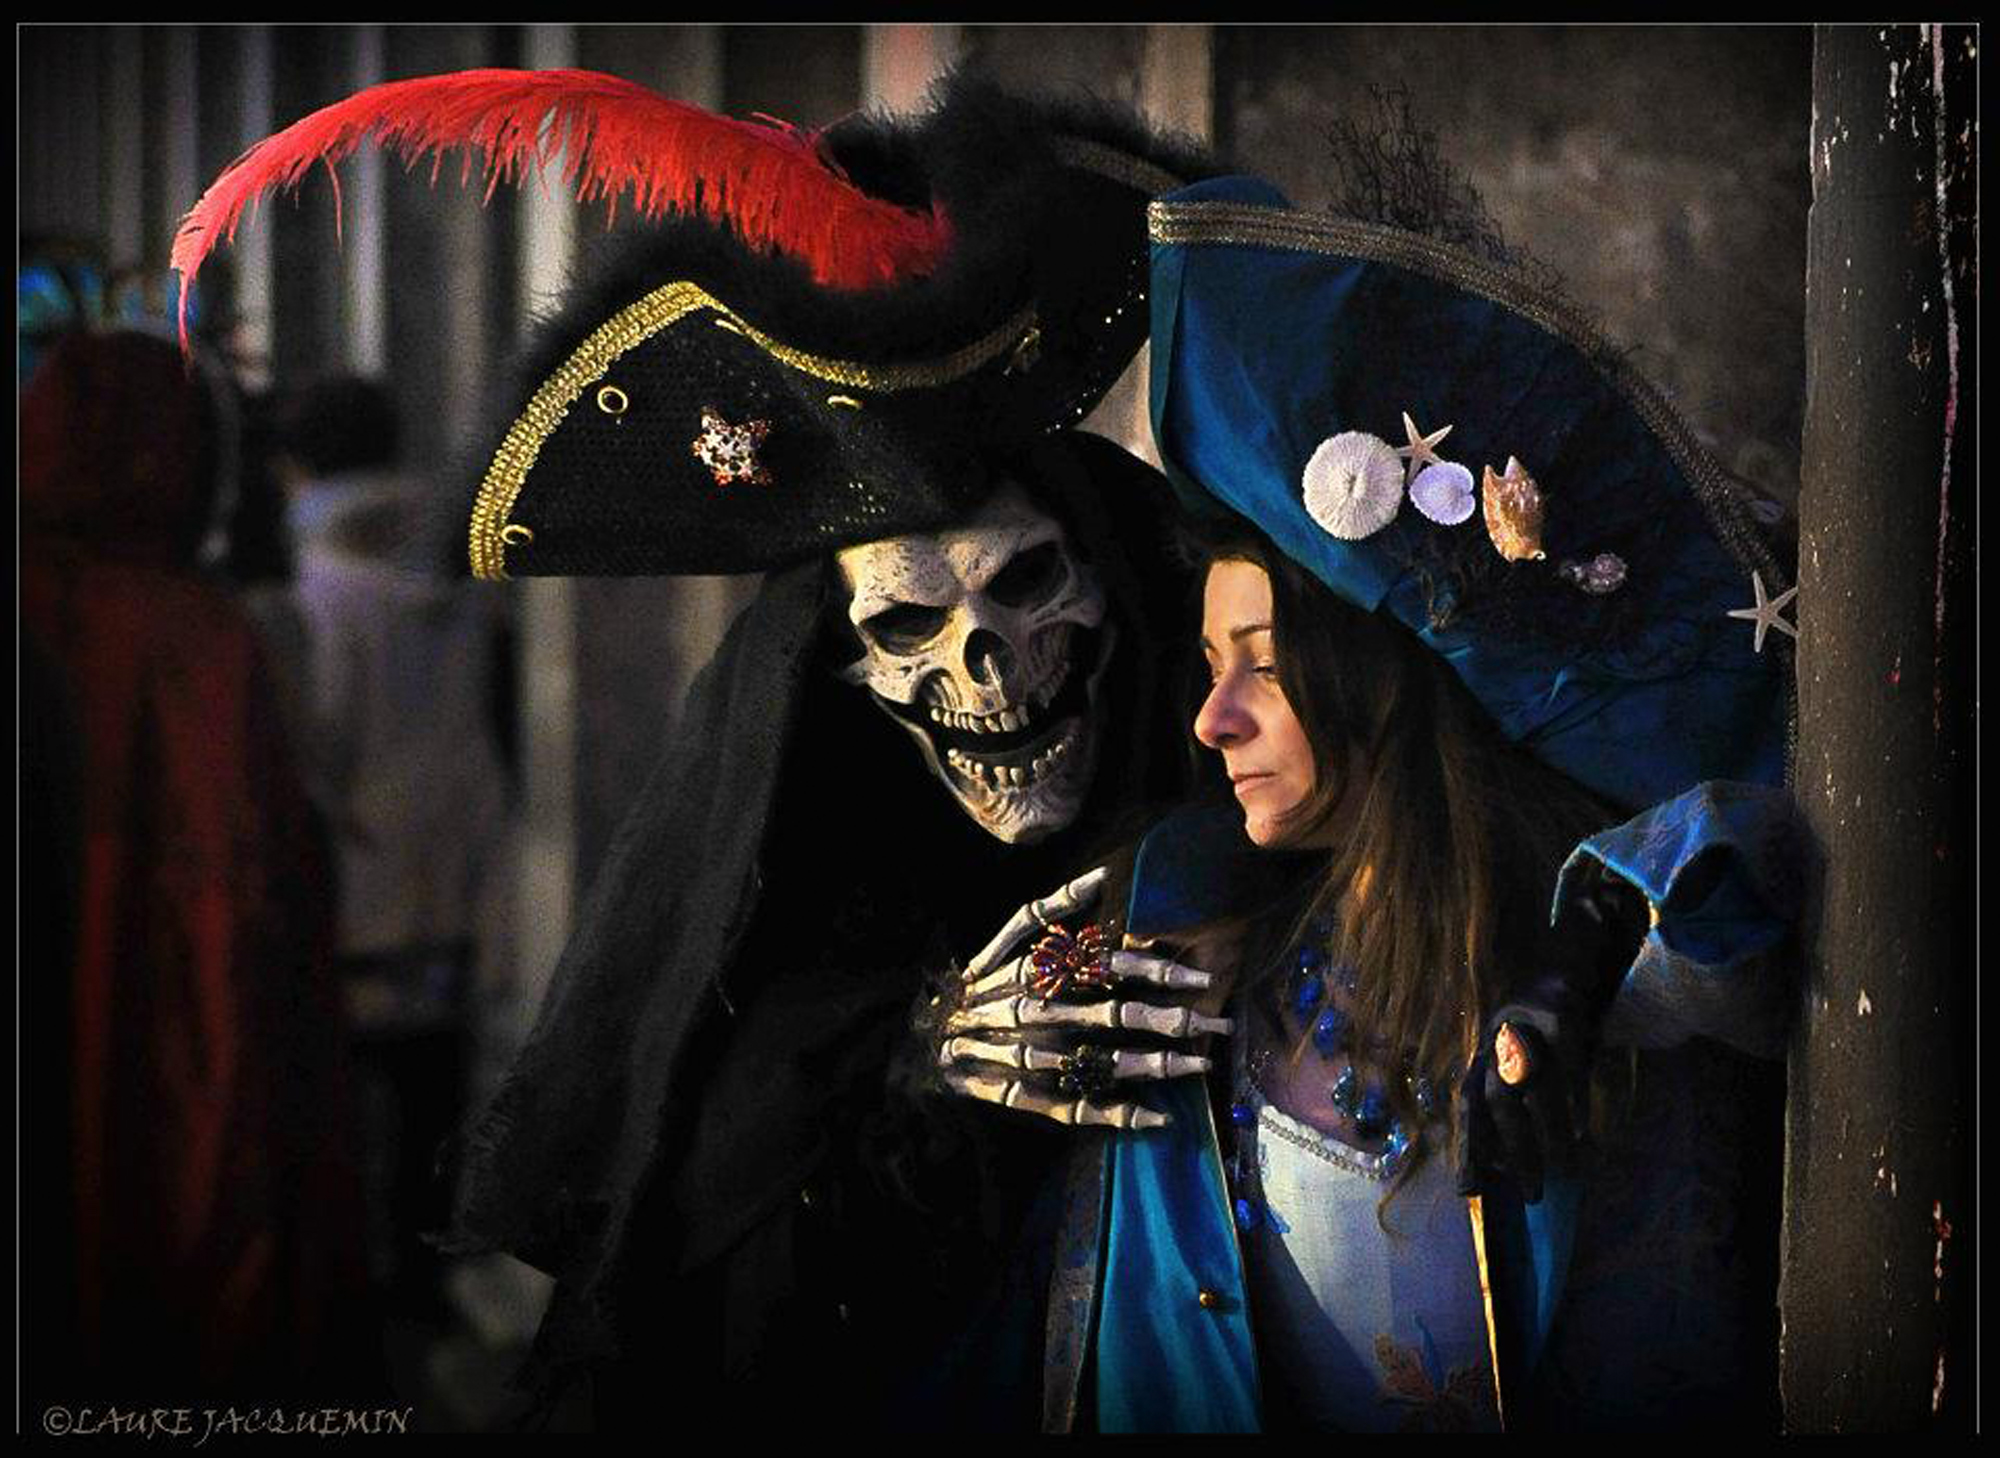 personal works laure jacquemin best venice carnaval photography (5).jpg